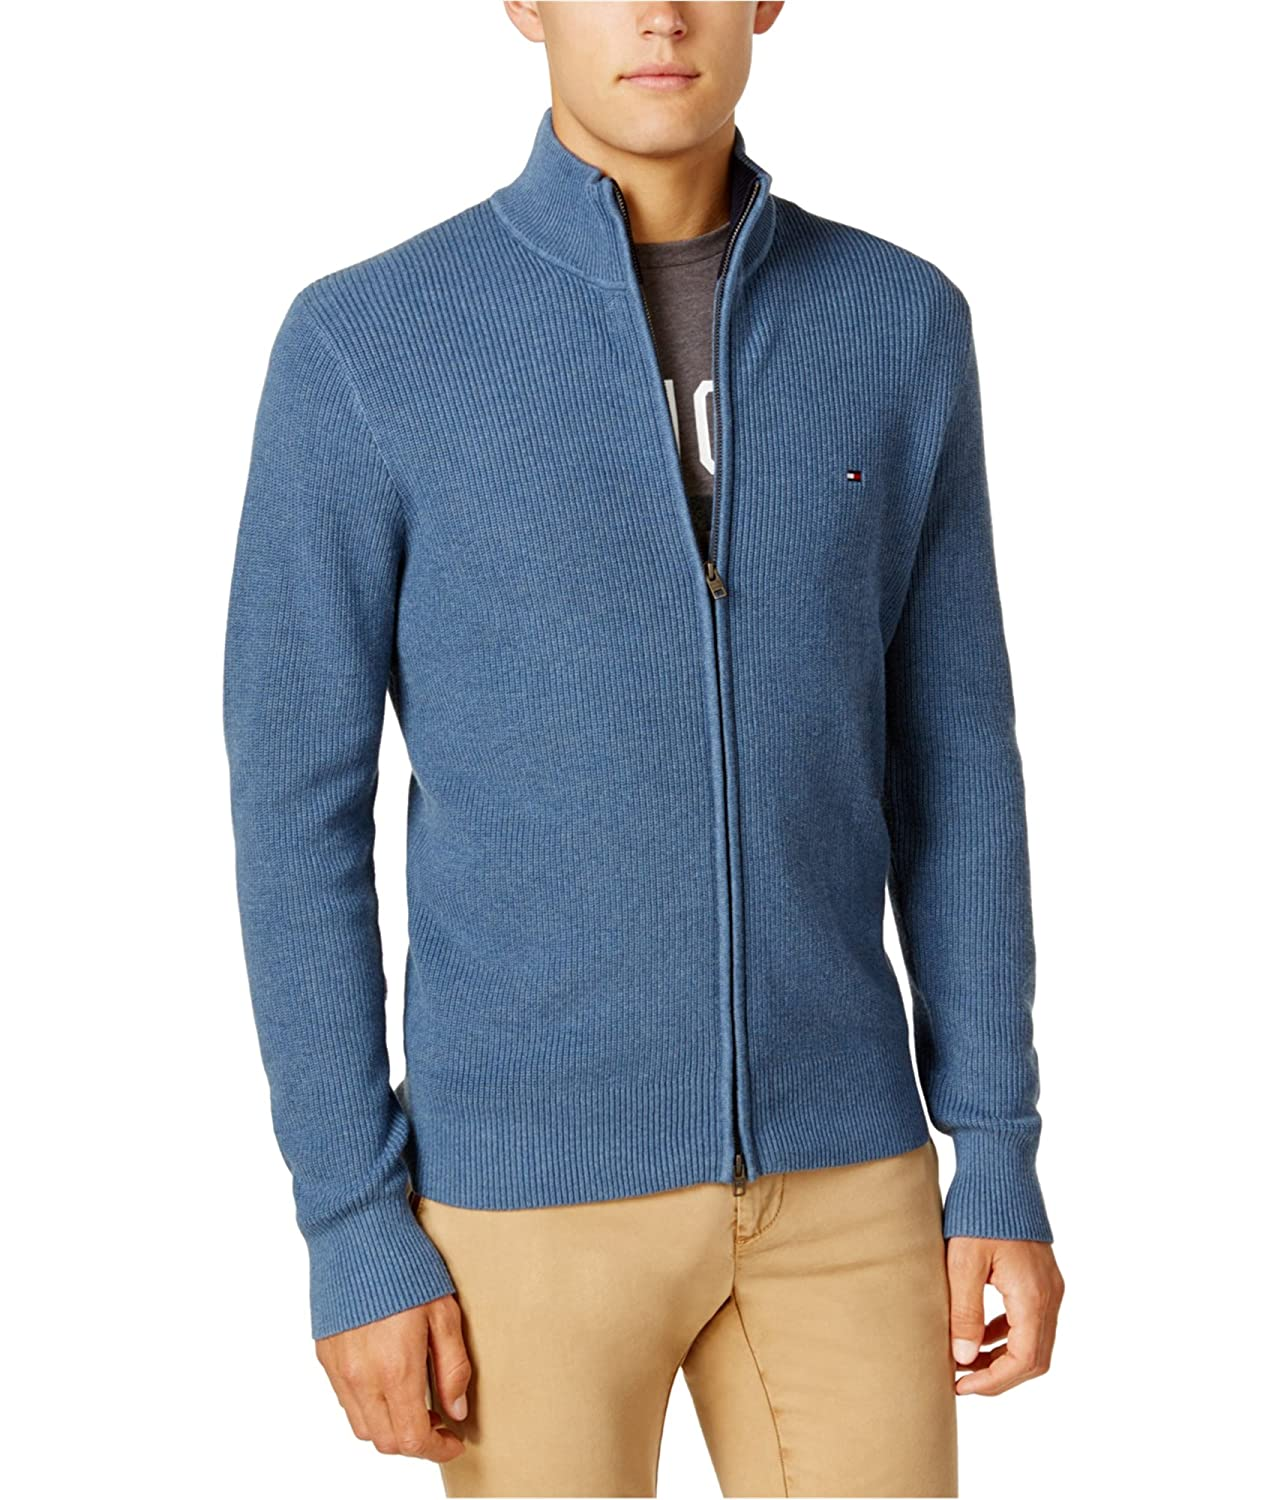 Tommy Hilfiger Mens Textured Ls Cardigan Sweater